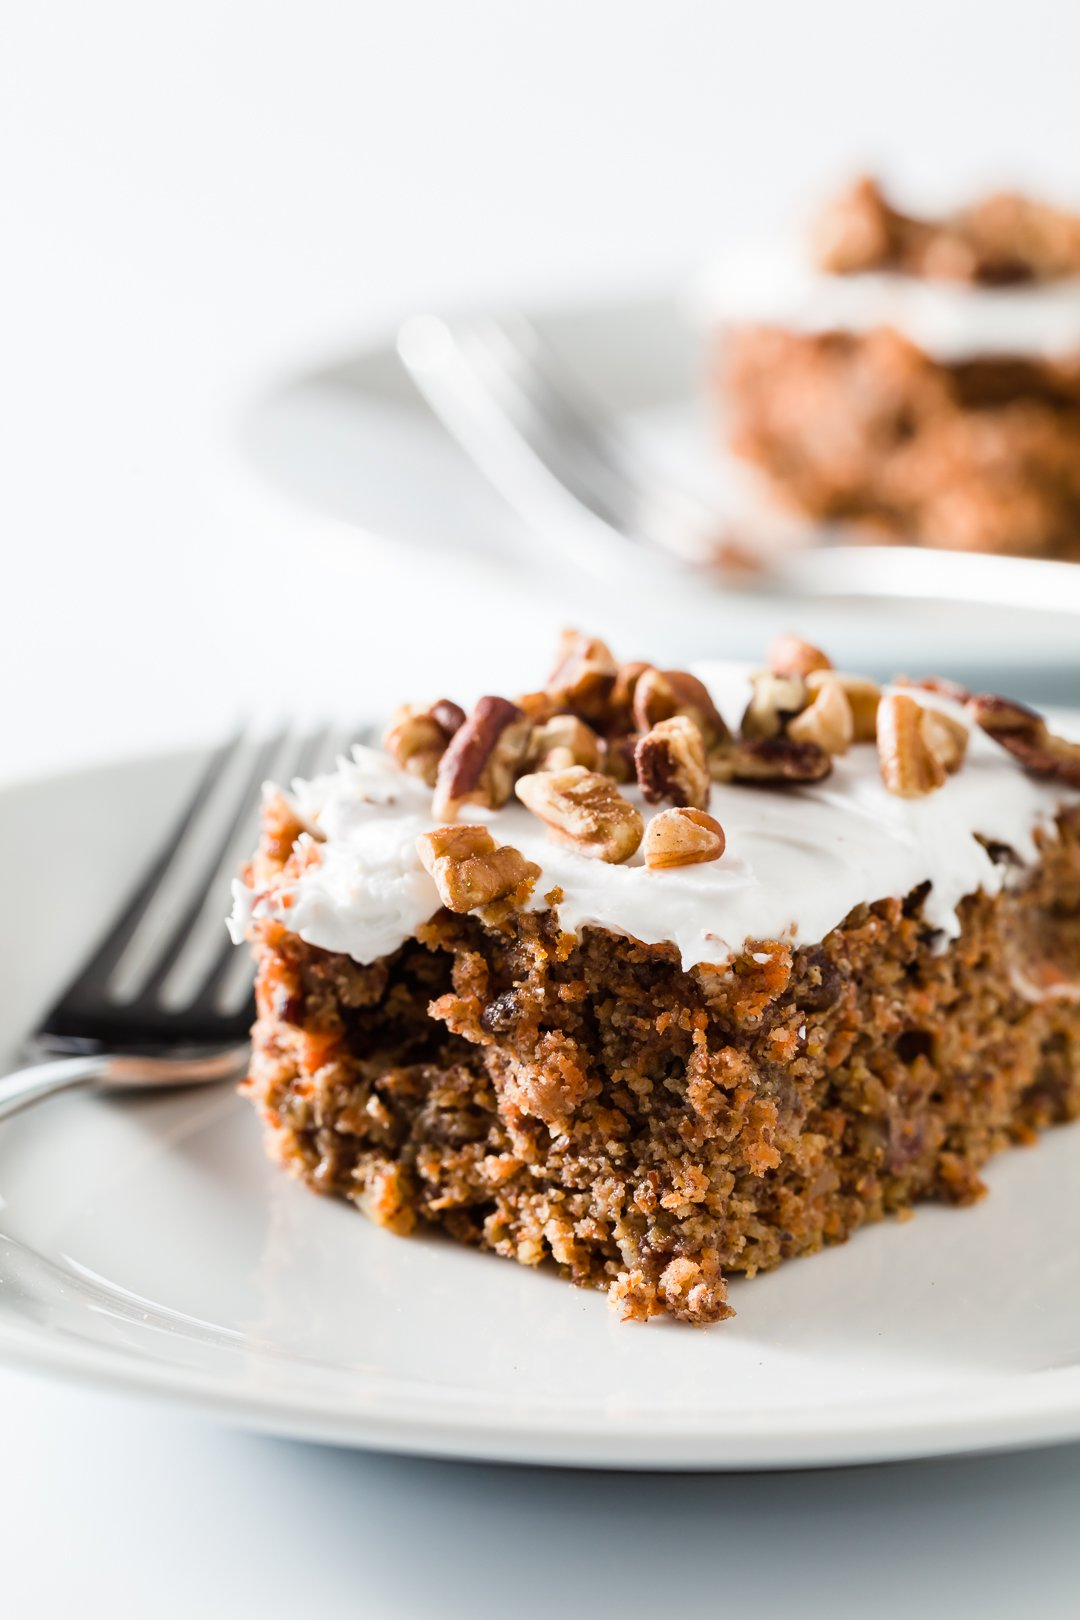 Slice of healthy carrot cake on a plate